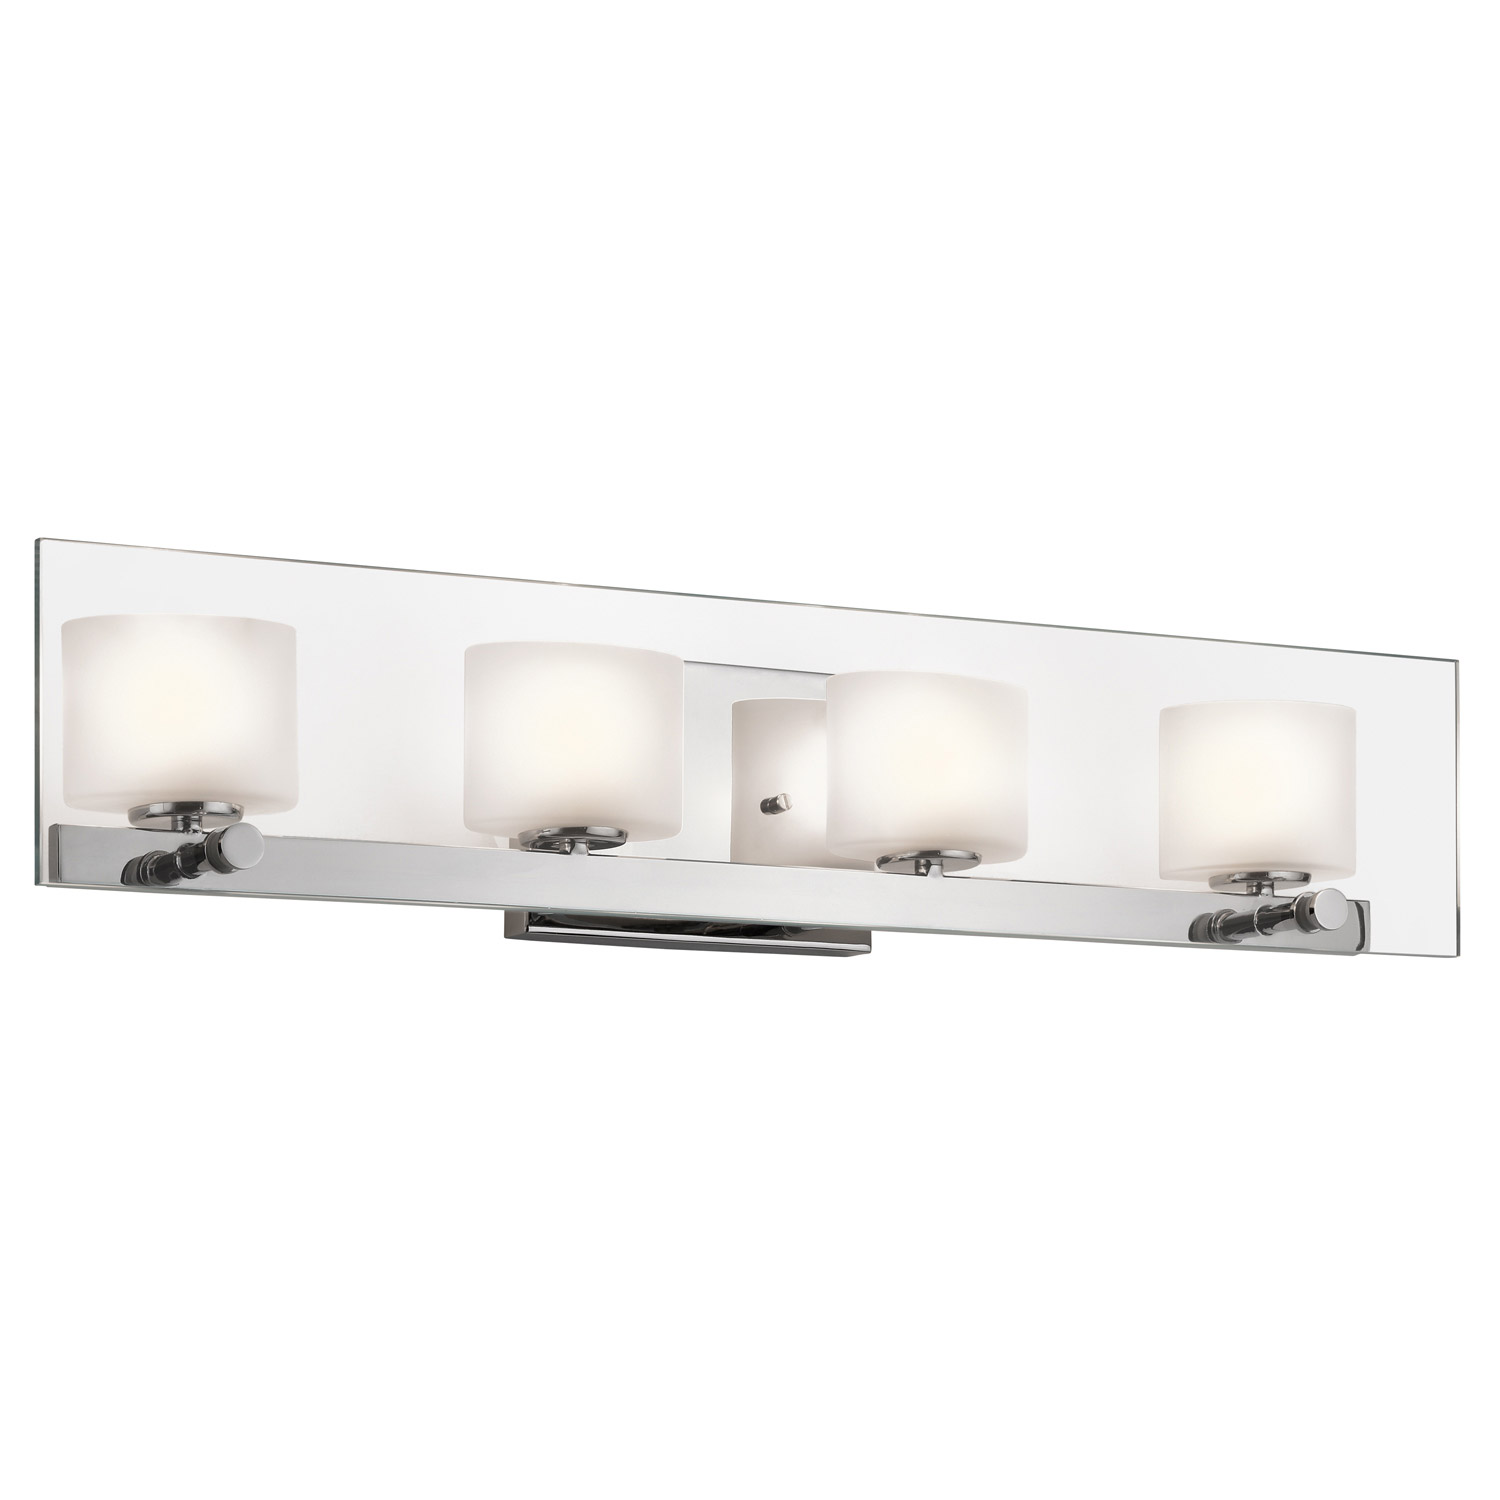 Kichler 45173ch Como Halogen Bathroom Vanity Light